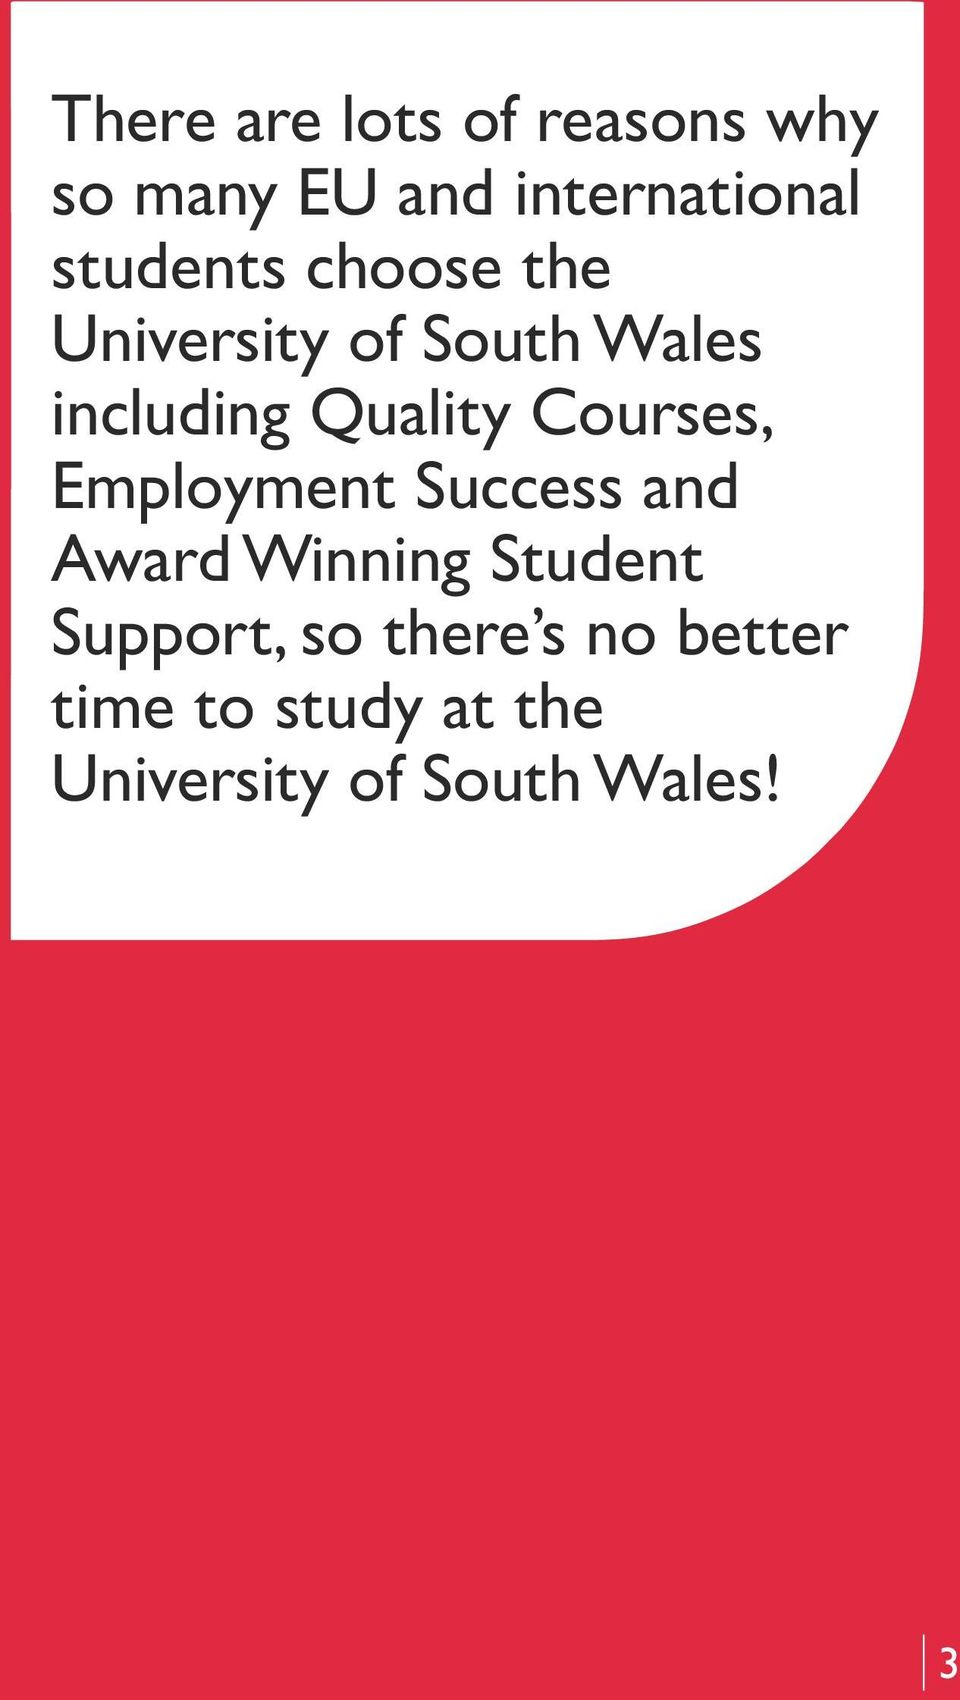 Courses, Employment Success and Award Winning Student Support,